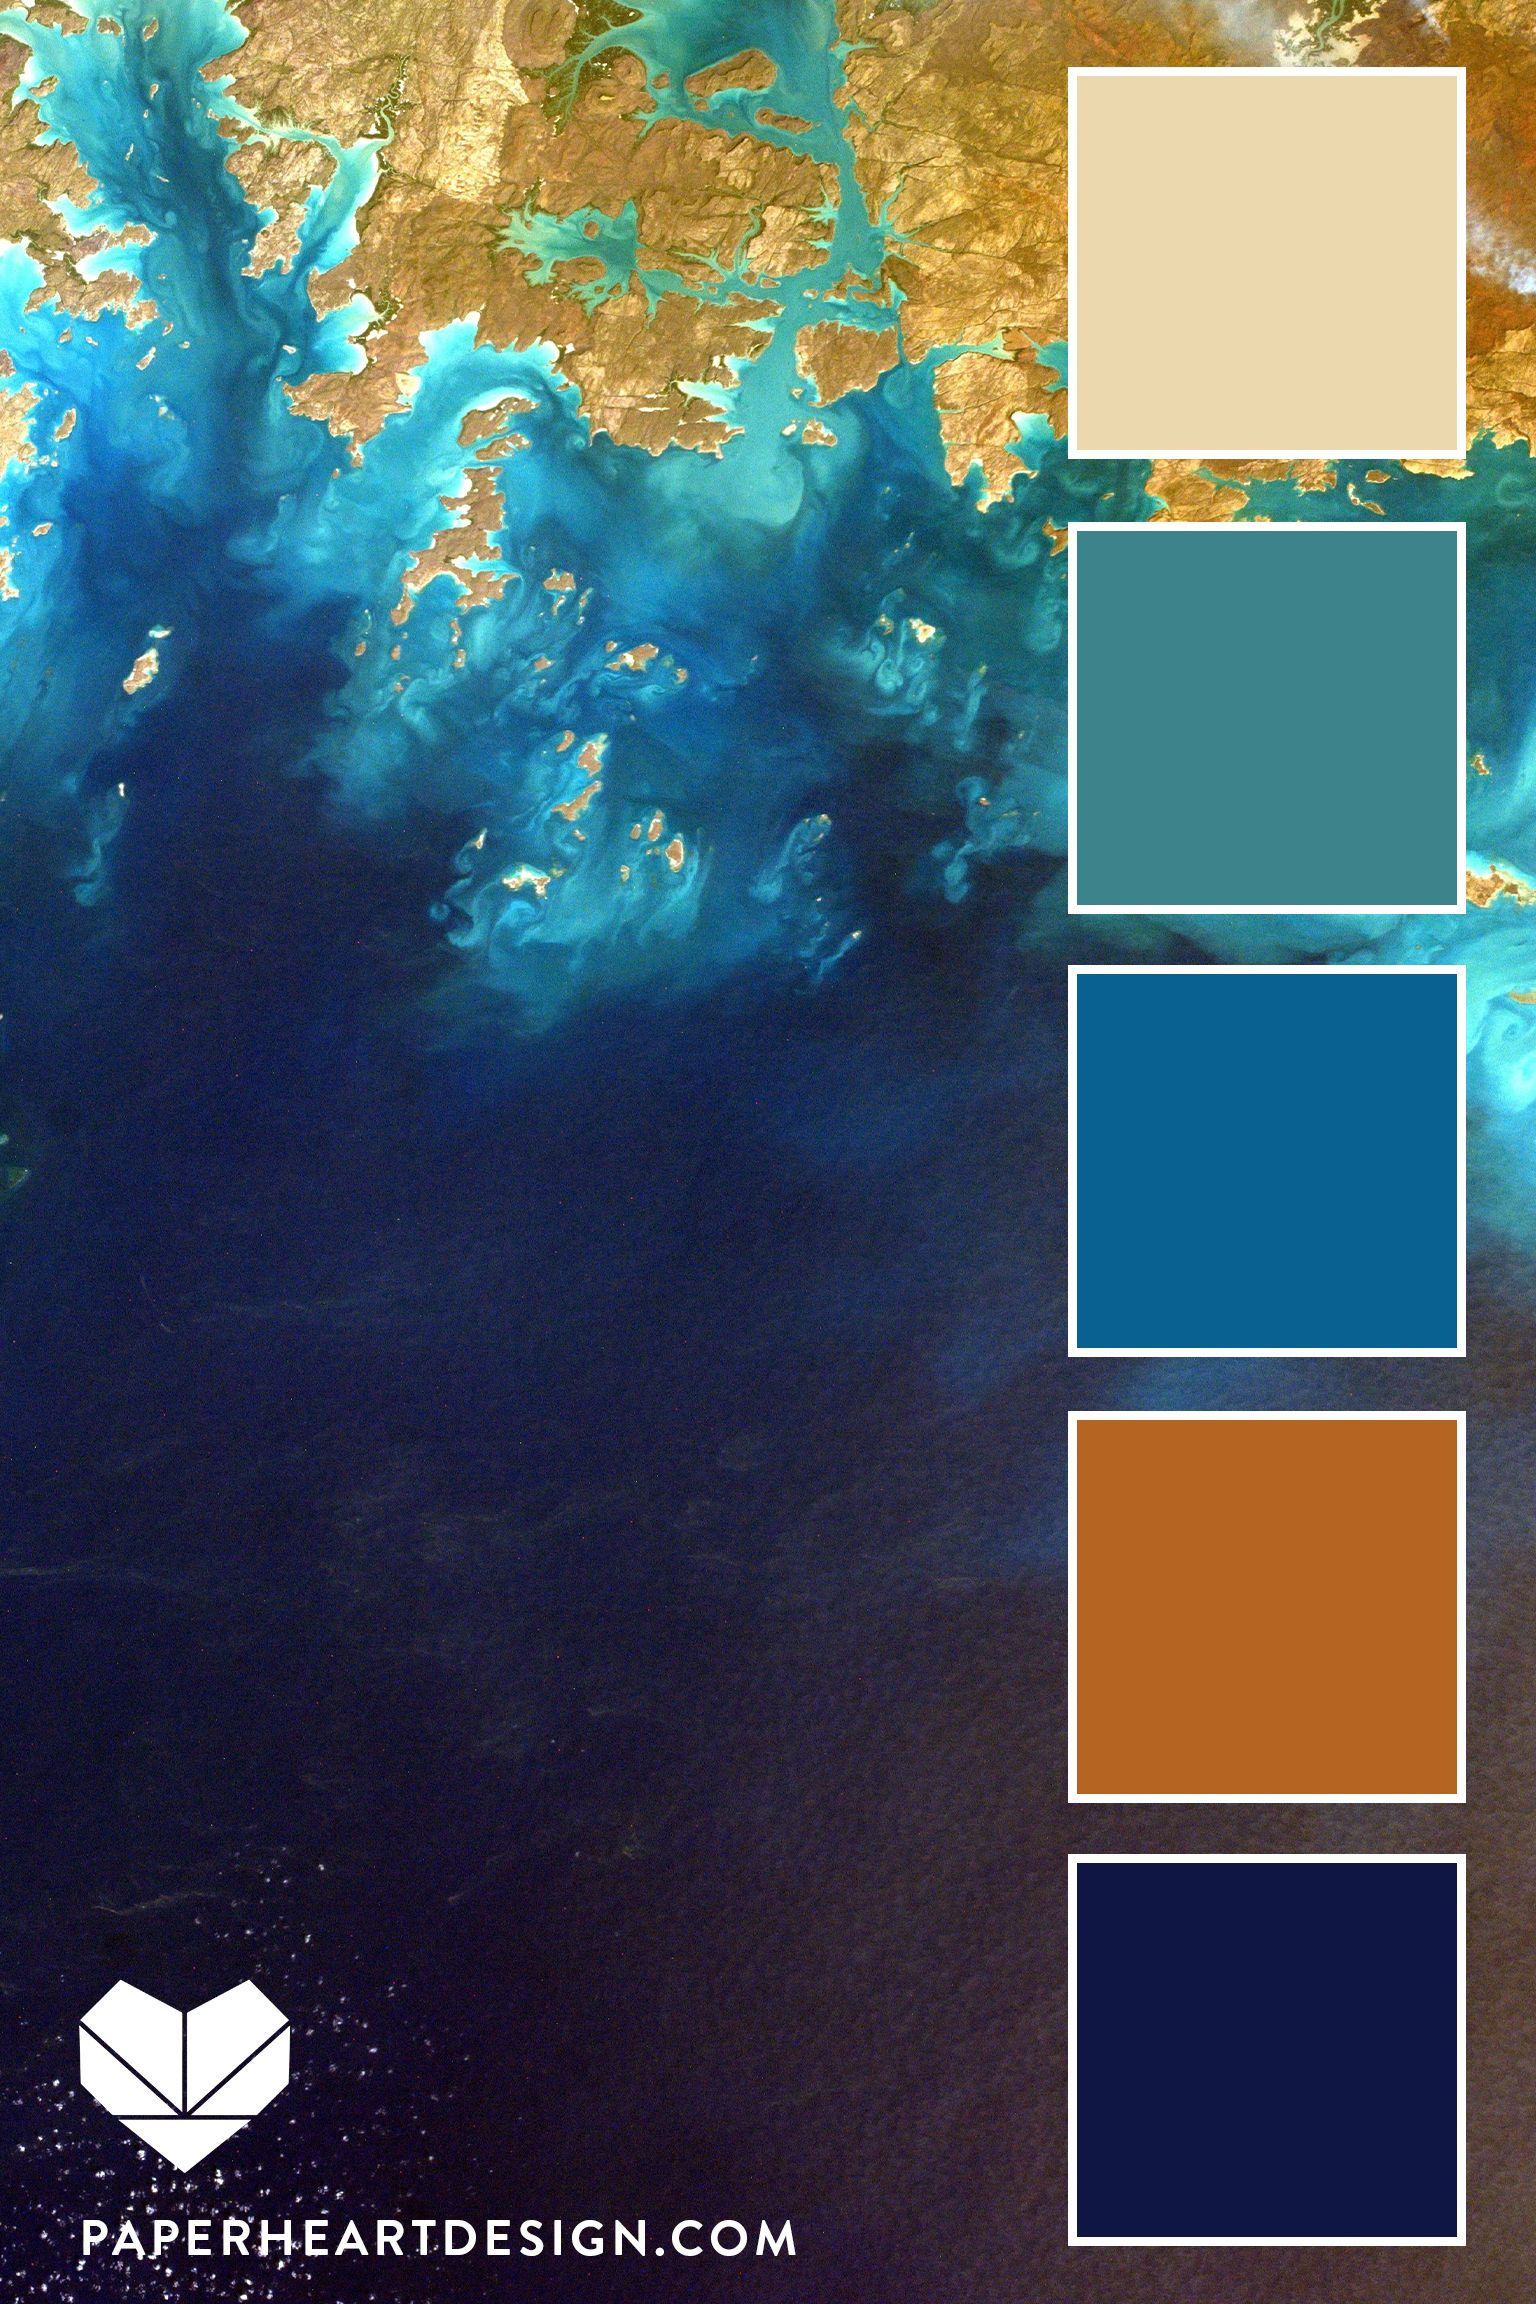 Pantone Color of the Year 2020: Classic Blue Color Palettes, Shore of the Sea